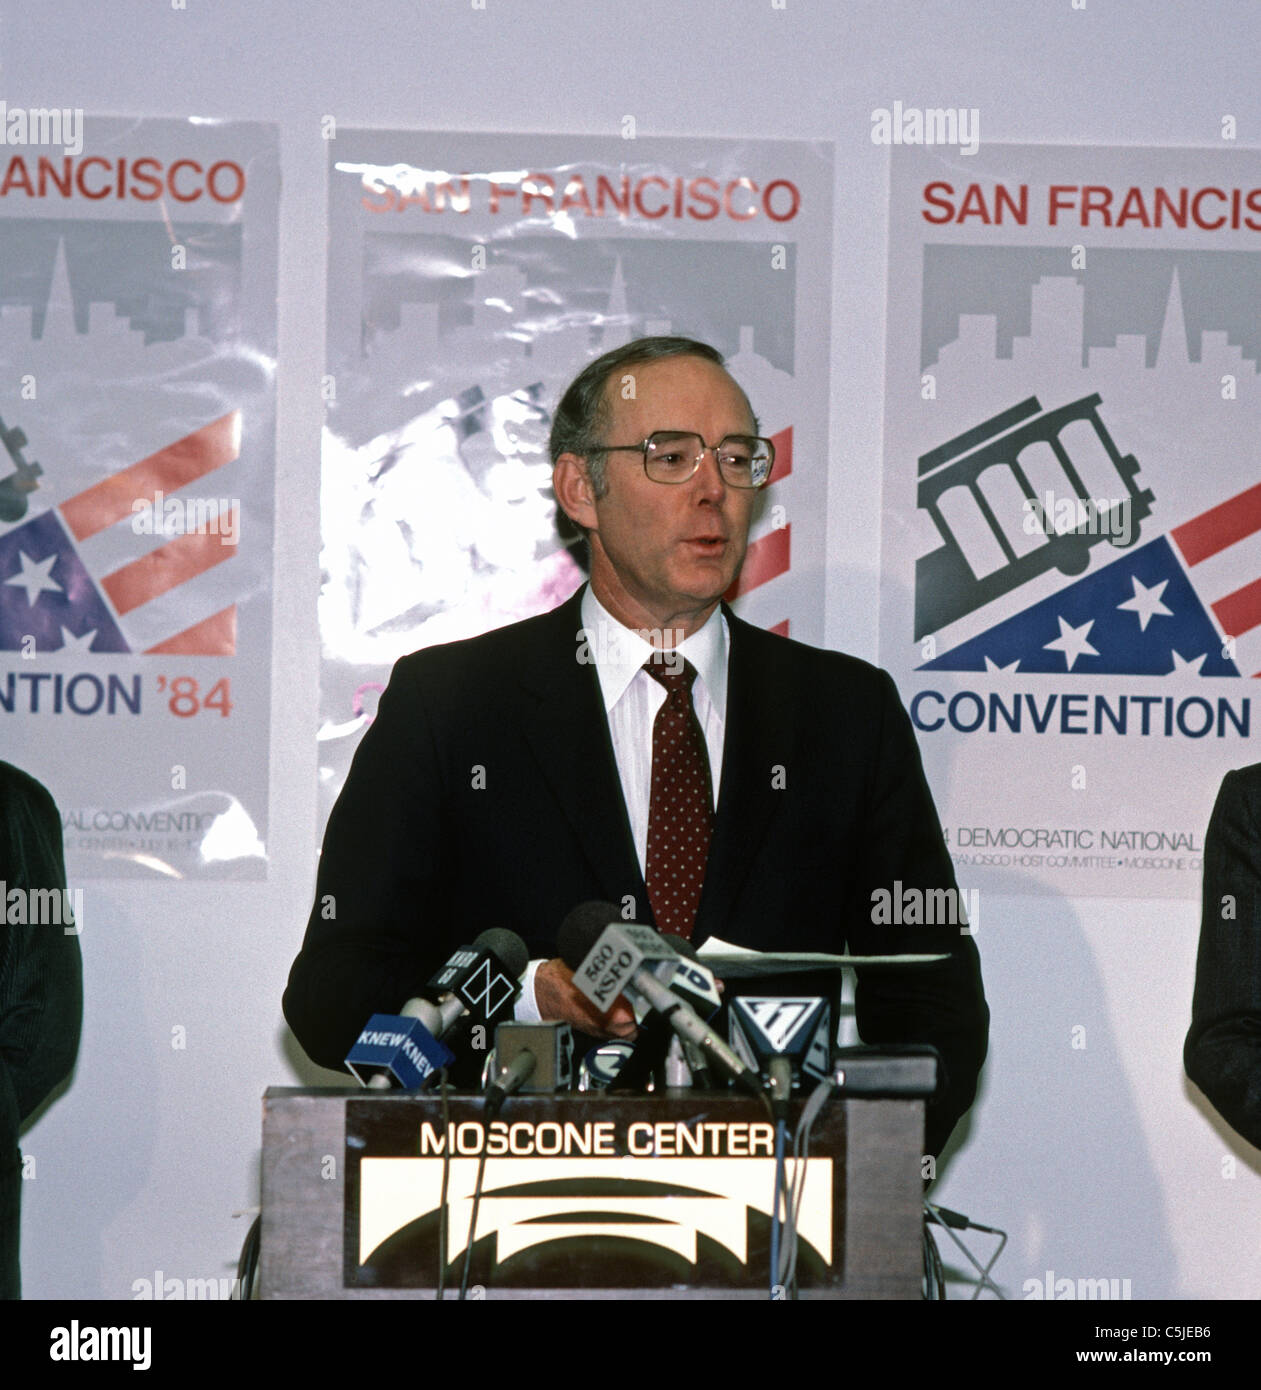 Democratic Party National Chairman, Charles T. Manatt, at the Democratic convention in San Francisco, California, - Stock Image